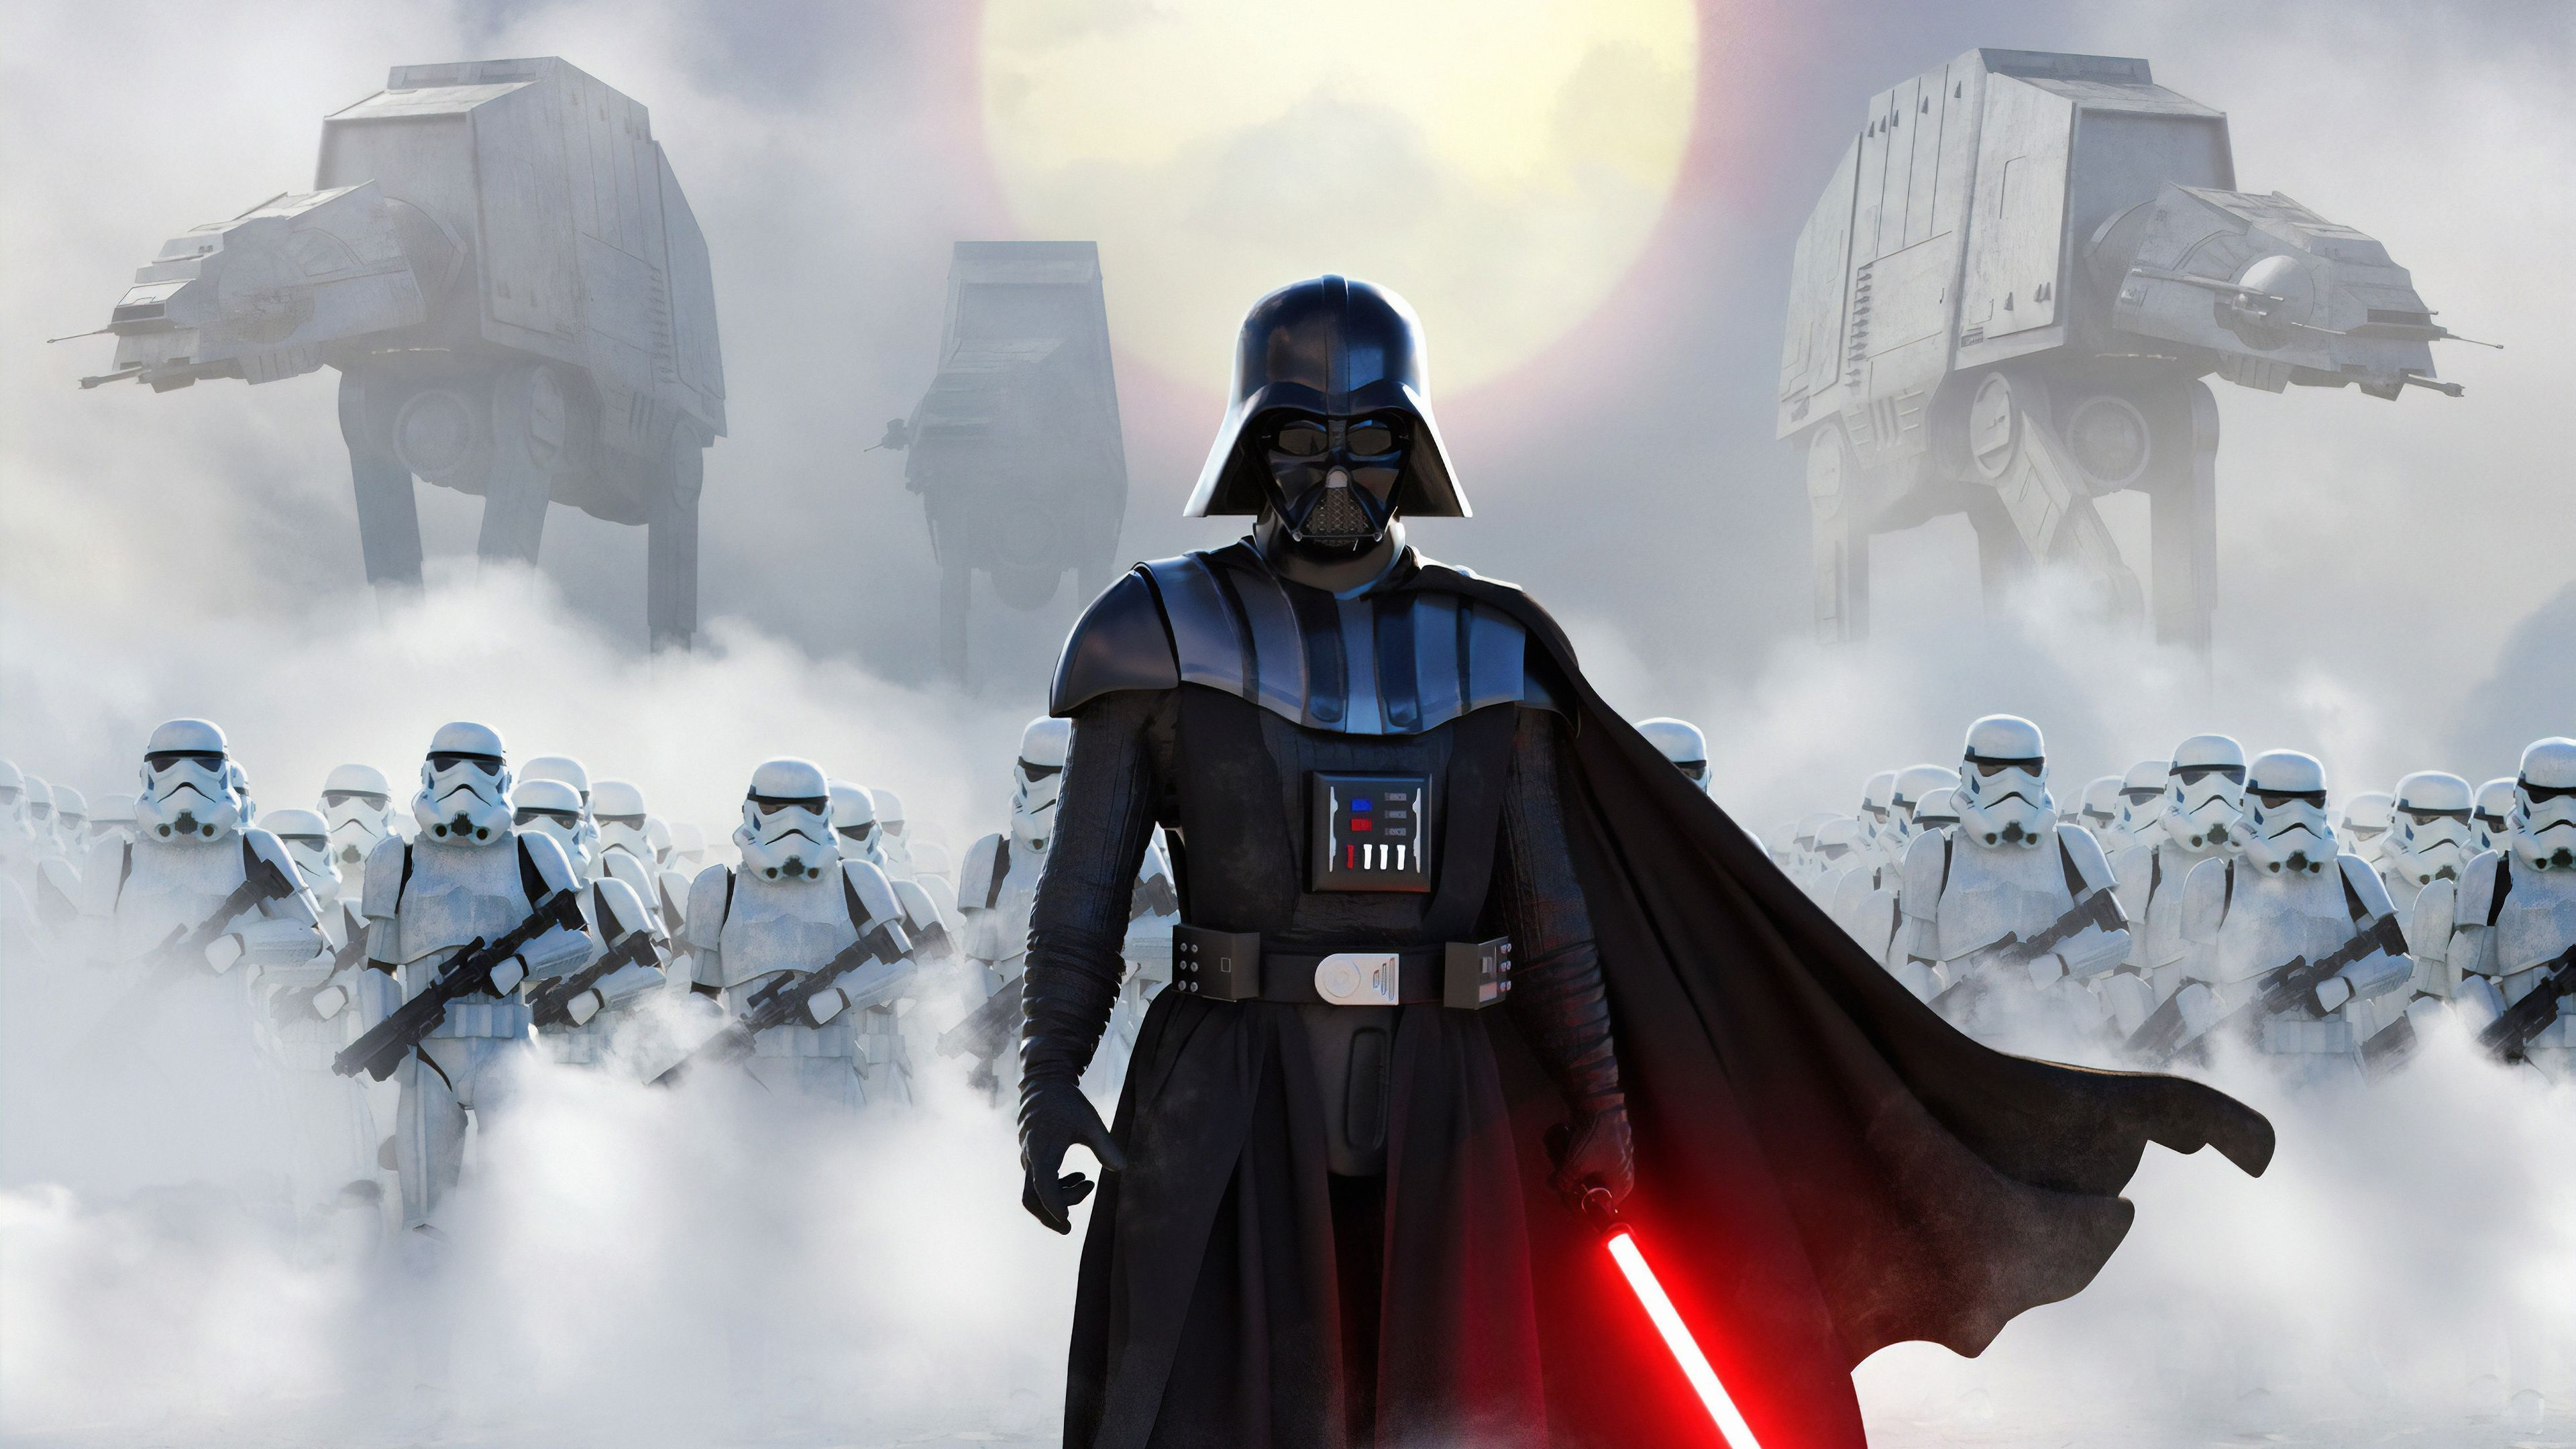 Darth Vader Wallpaper For Mobile Phone Tablet Desktop Computer And Other Devices Hd And 4k Wall In 2021 Darth Vader Wallpaper Darth Vader 4k Wallpaper Darth Vader 4k